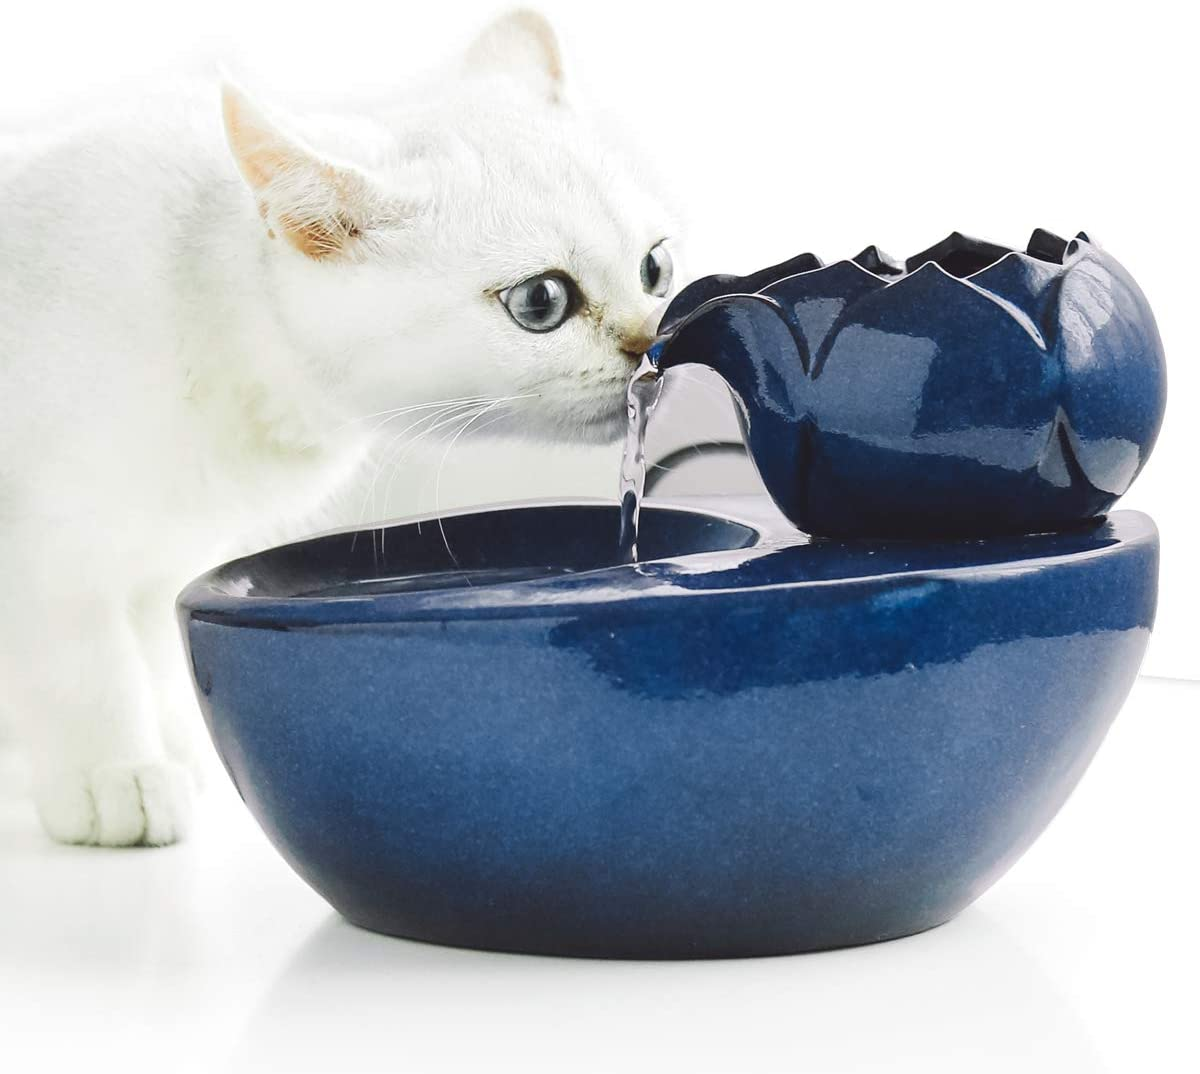 Aolnv Lotus Cat Water Fountain, Automatic Ceramic Drinking Fountain for Pets,Easy to Clean, 50.8 oz. Water Capacity (Blue)